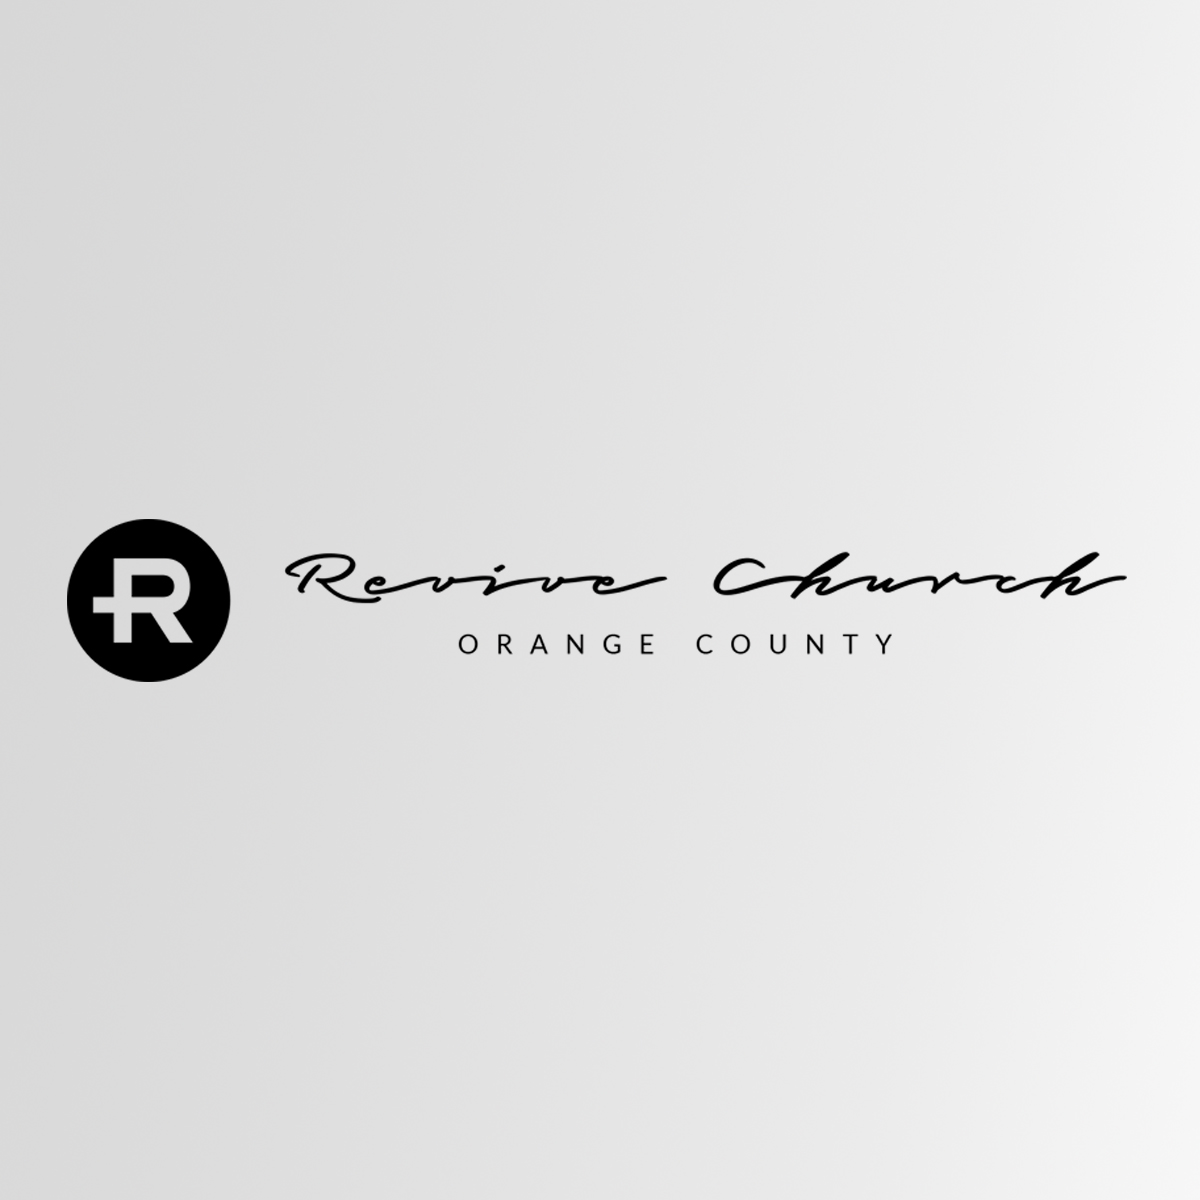 branding - creative - agency - logo design - community -marketing - web design - social media - revive church - church branding - church design - orange county